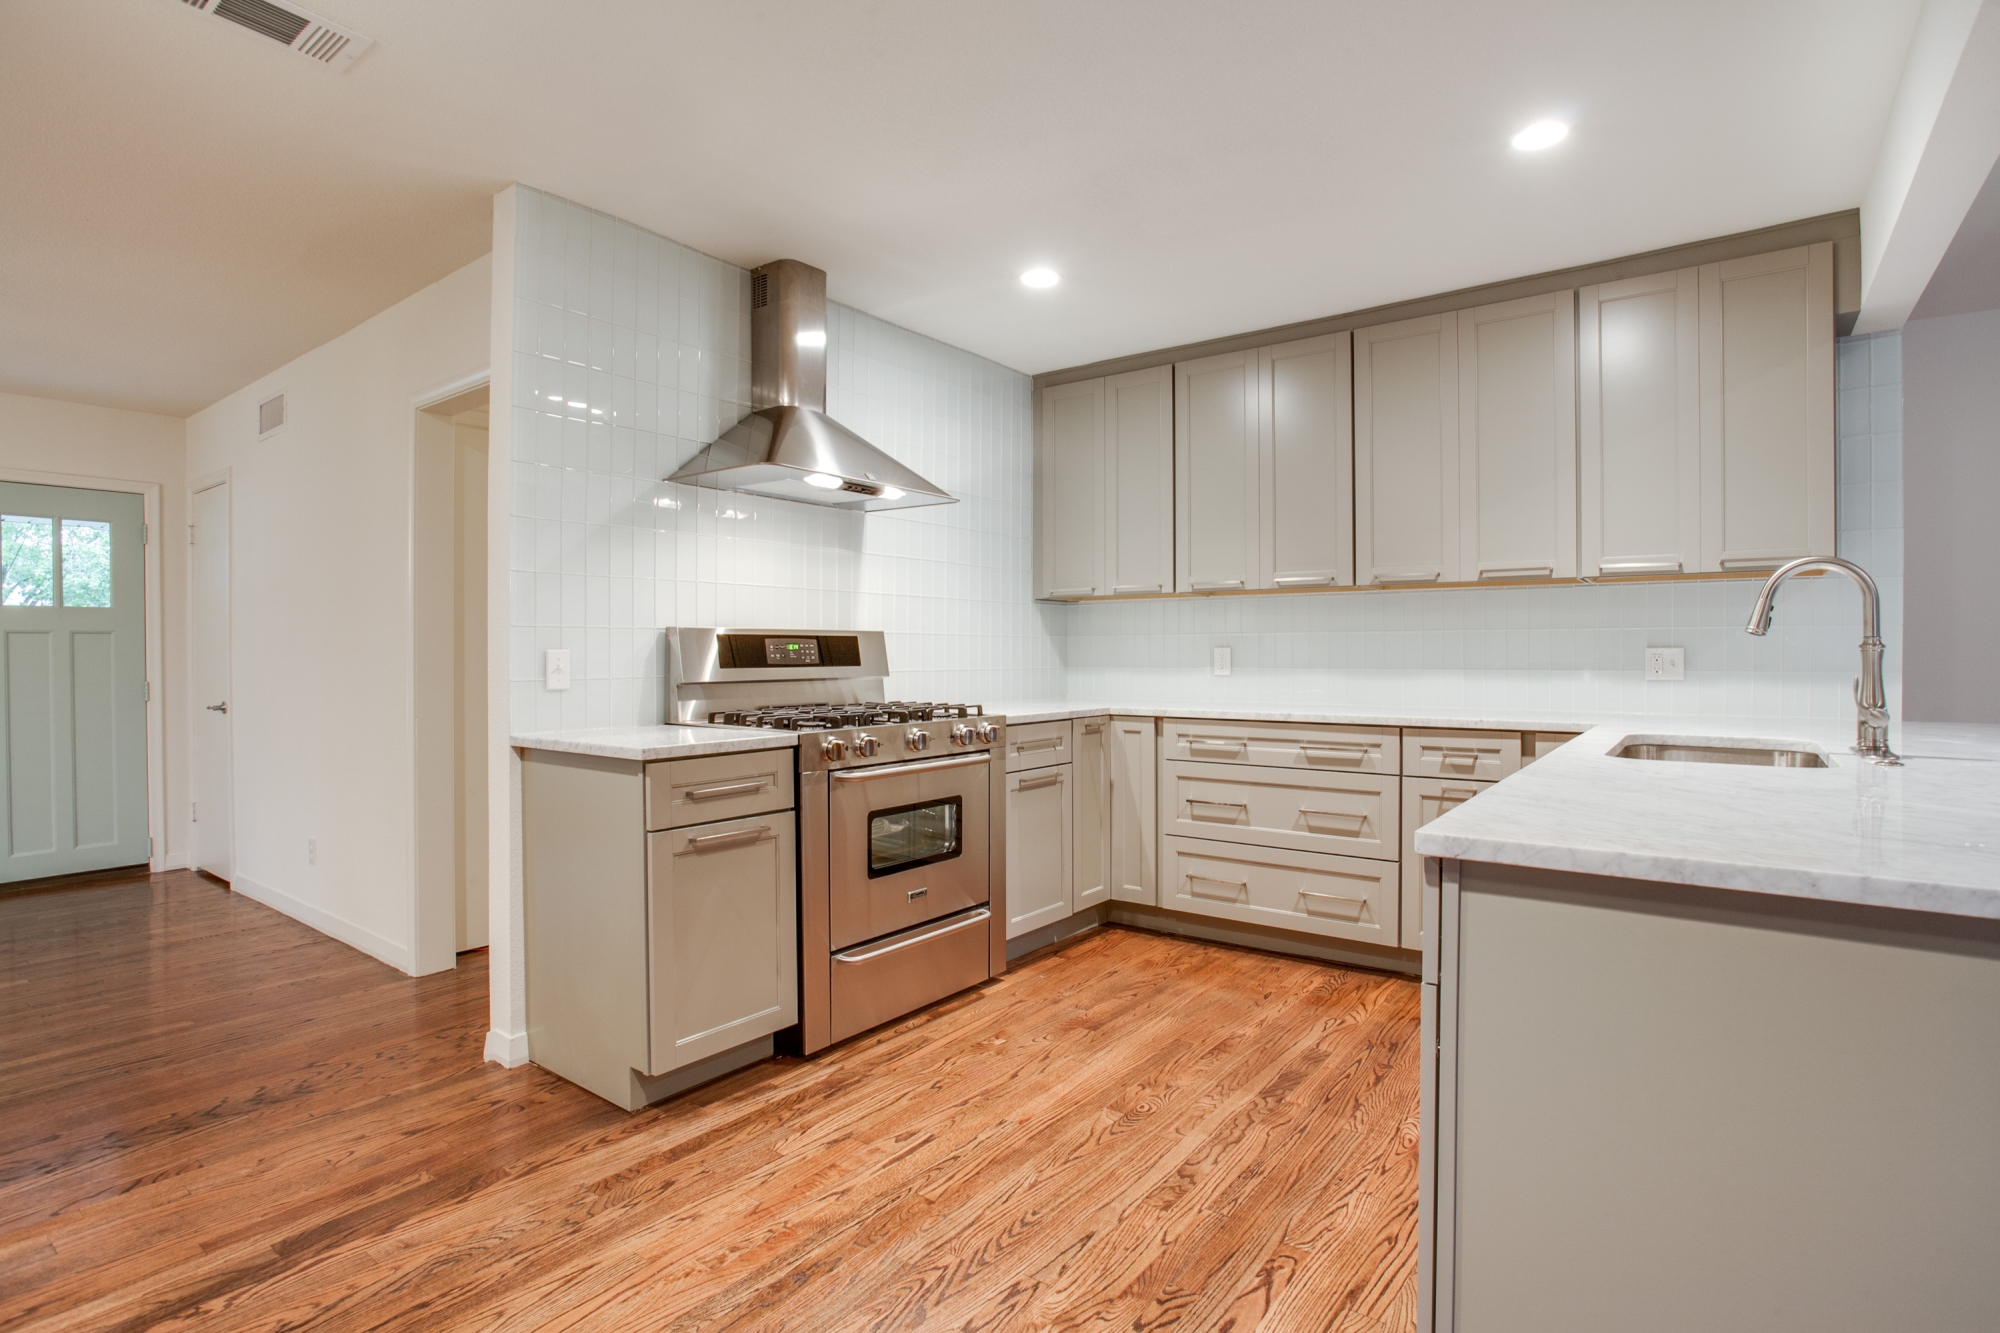 Impressive Plain White Kitchen Subway Tile to Meet Grey Furnishing and Wood Flooring